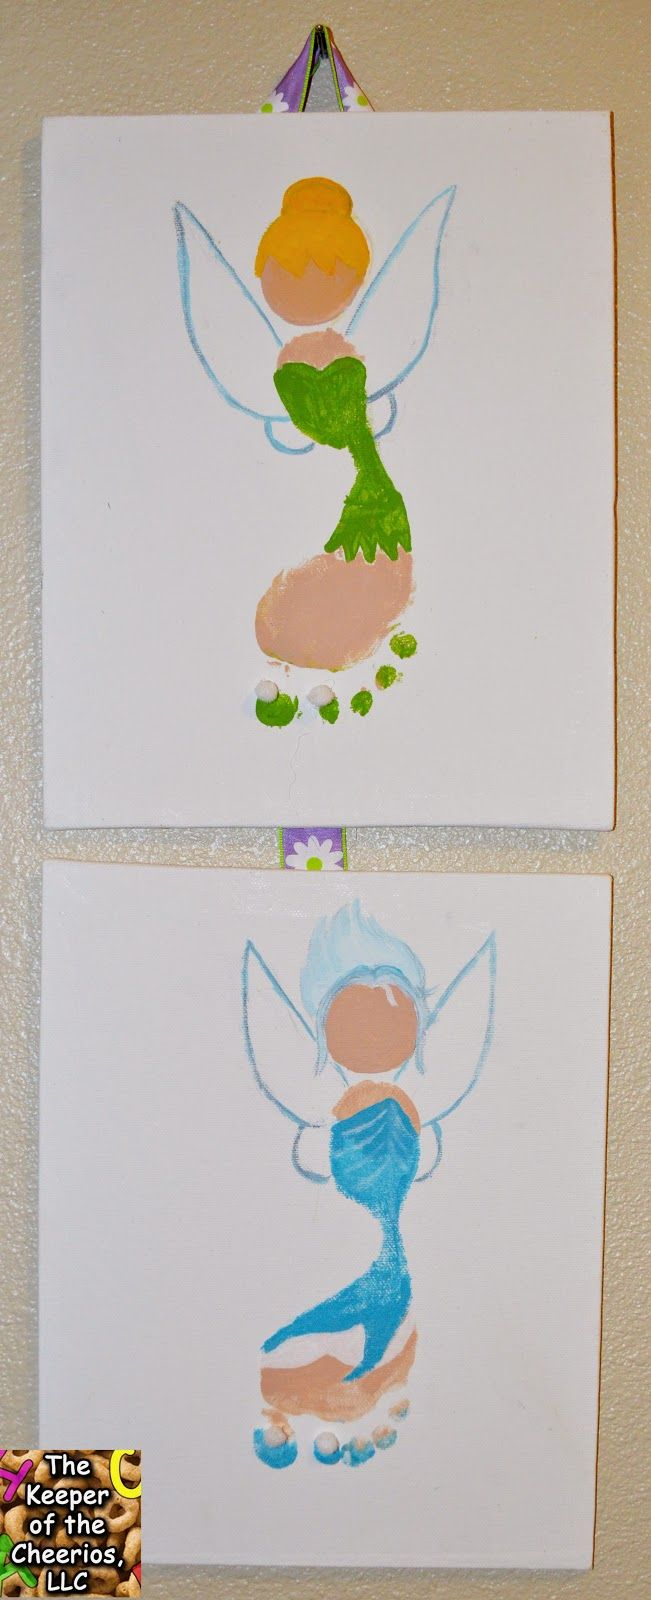 The Keeper of the Cheerios: Tinker Bell and Periwinkle Secret of the Wings Footprint Craft